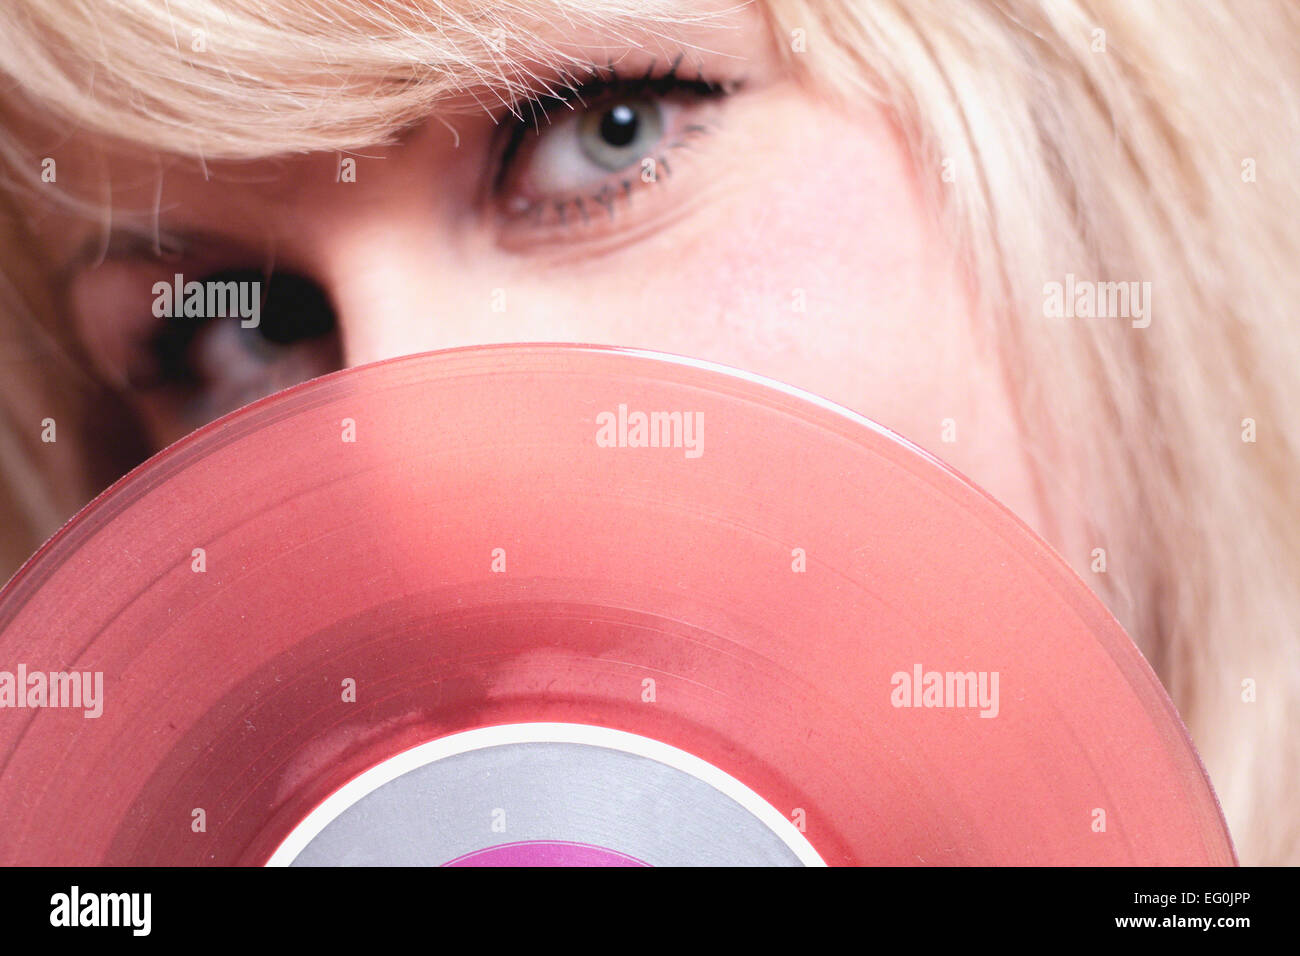 Close-up of woman hiding behind pink record - Stock Image